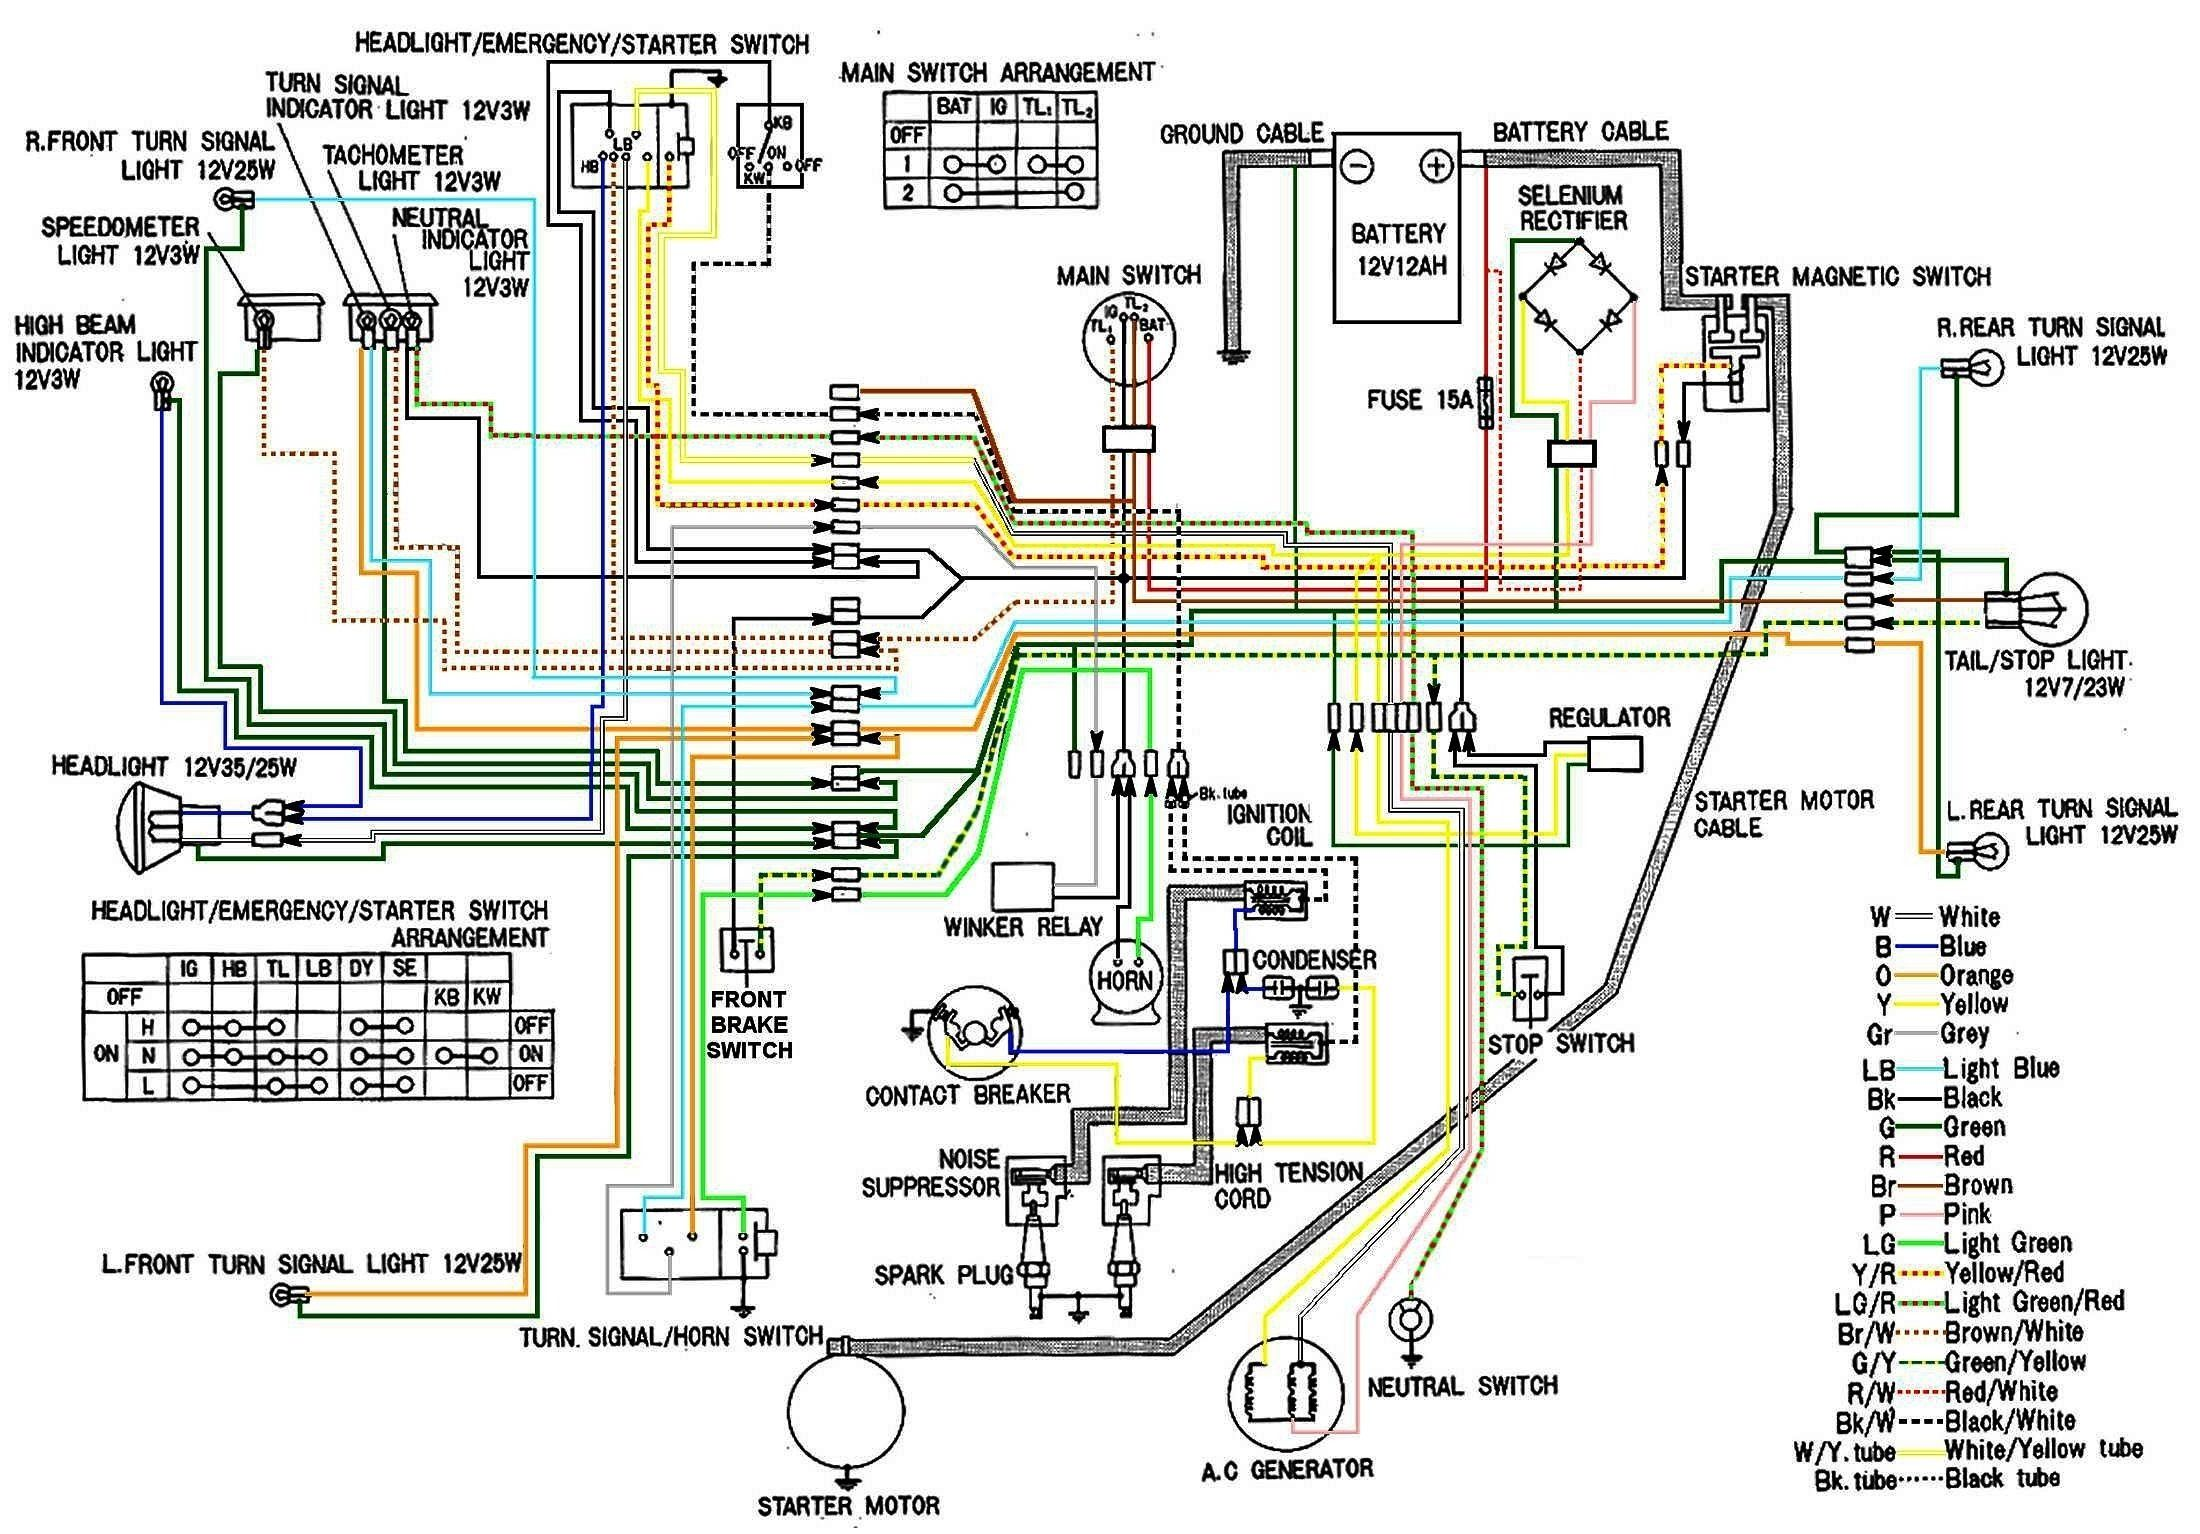 Cb360 Wiring Harness Diagram - Trailer Breakaway Battery Wiring Diagrams  for Wiring Diagram Schematics